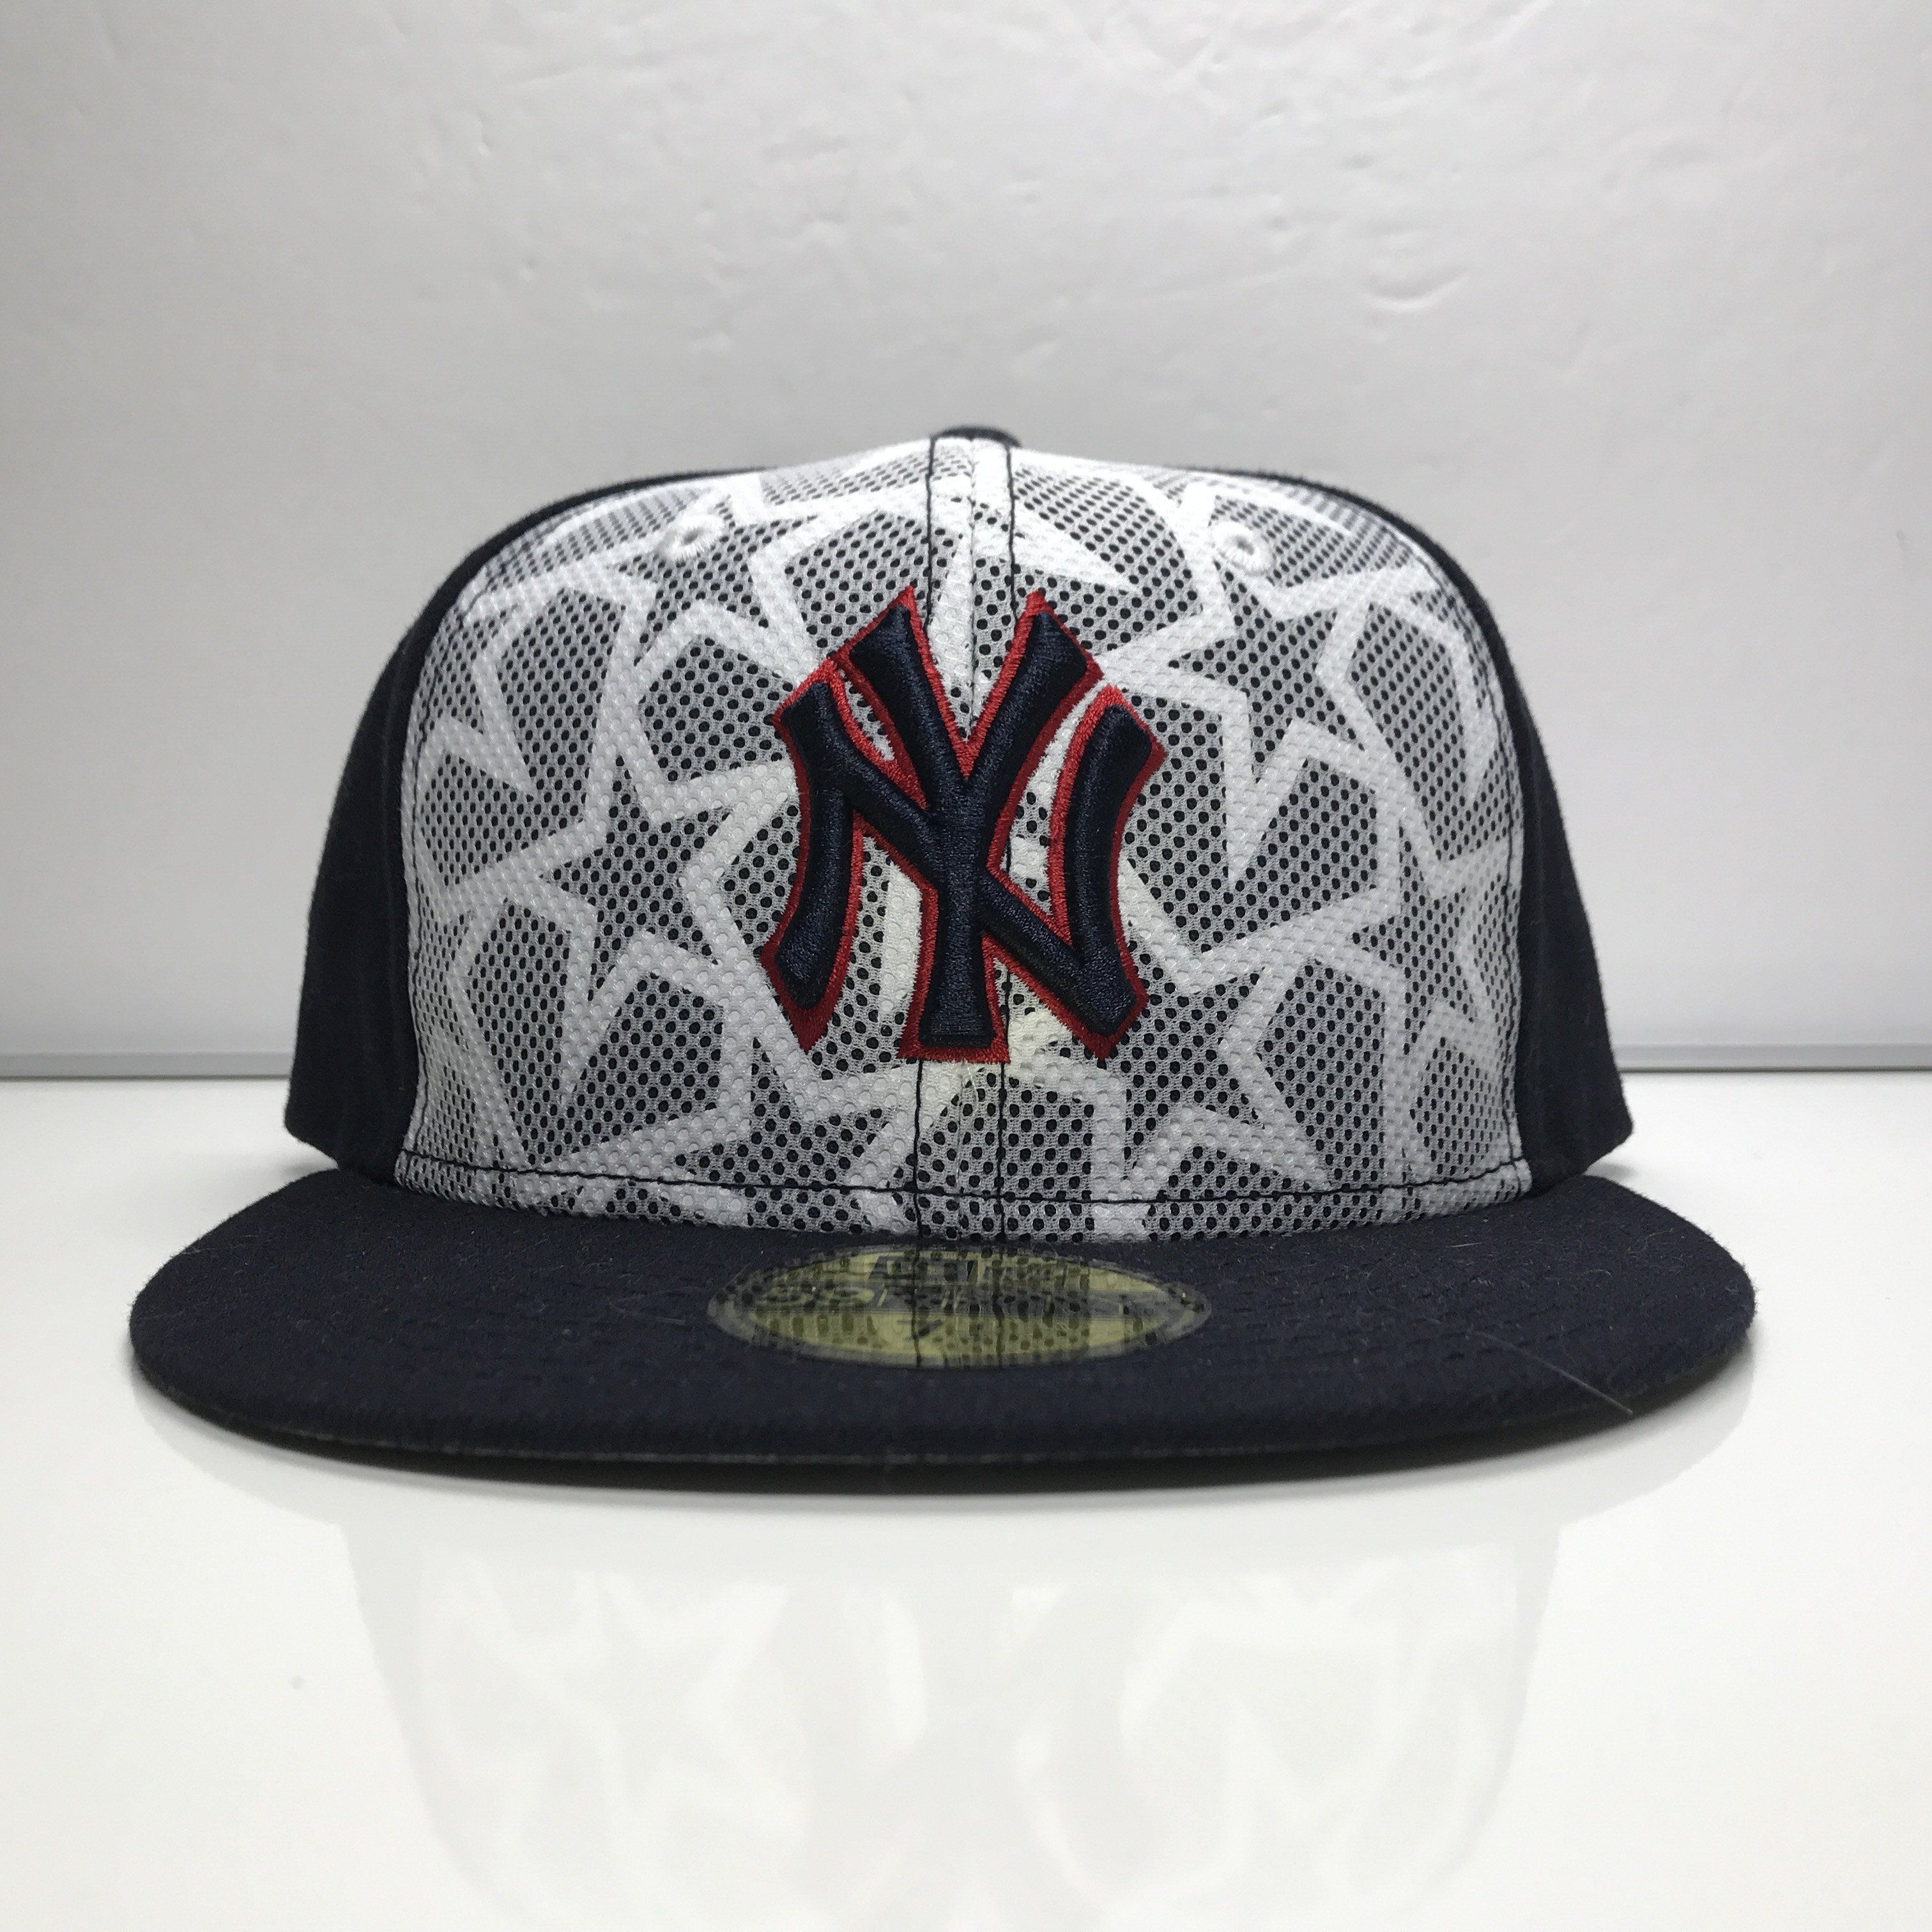 7c59e2a2de524 ... greece new york yankees new era 59fifty 4th of july fitted hat size 7 1  4